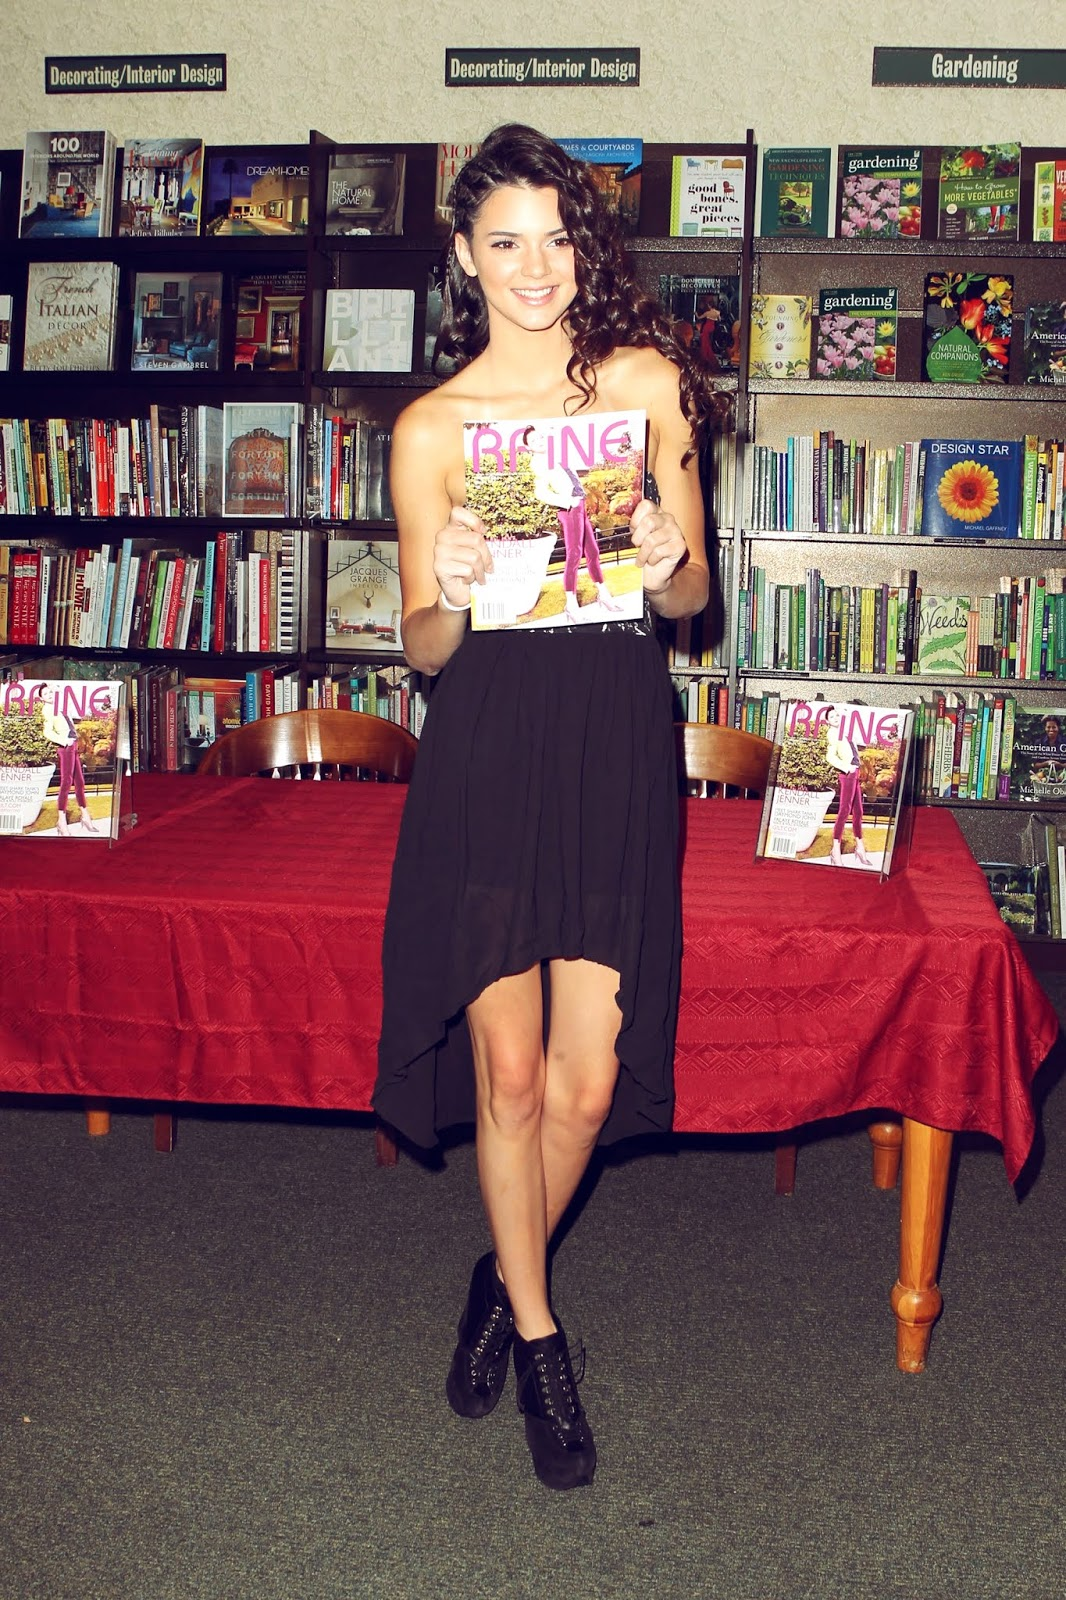 19 - Signing and Autograph RAINE Magazine at Barnes & Noble on August 18, 2012